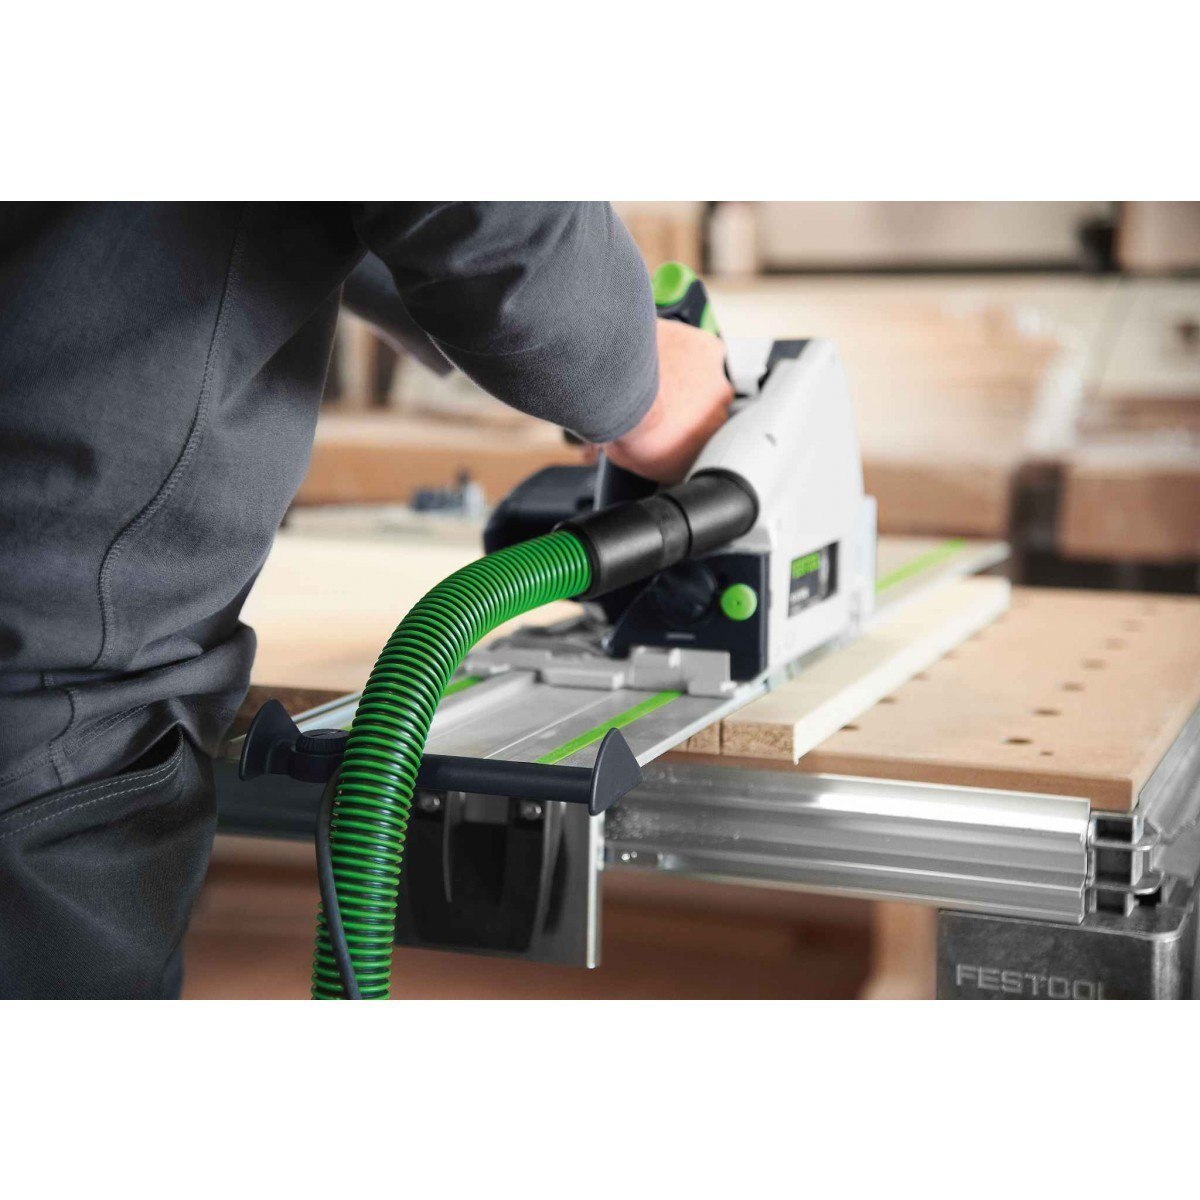 Festool 575388 Plunge Cut Track Saw TS 55 REQ-F-Plus-FS USA